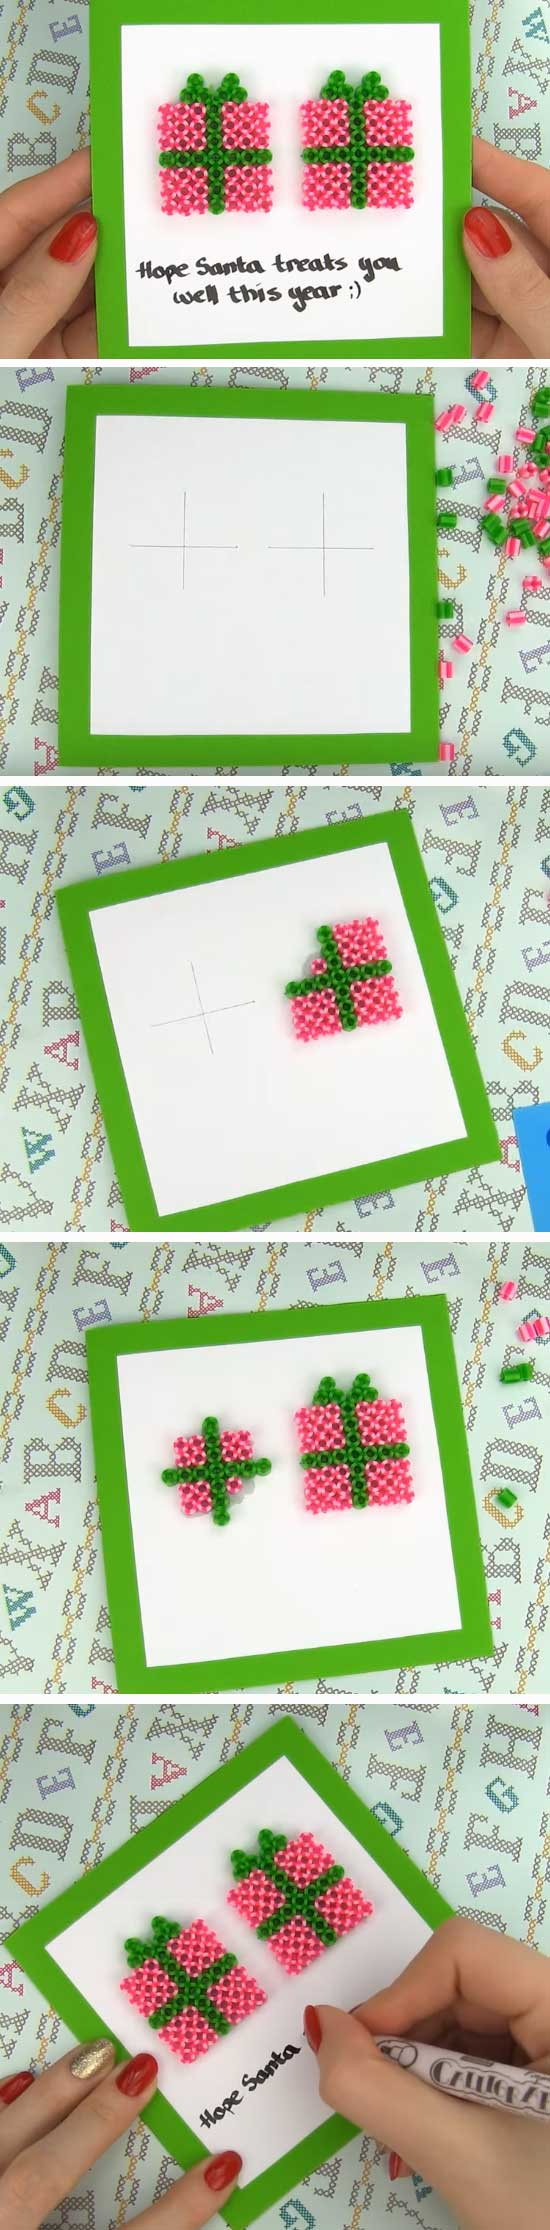 21 DIY Ideas and Tutorials to Create Your Very Own Christmas Card